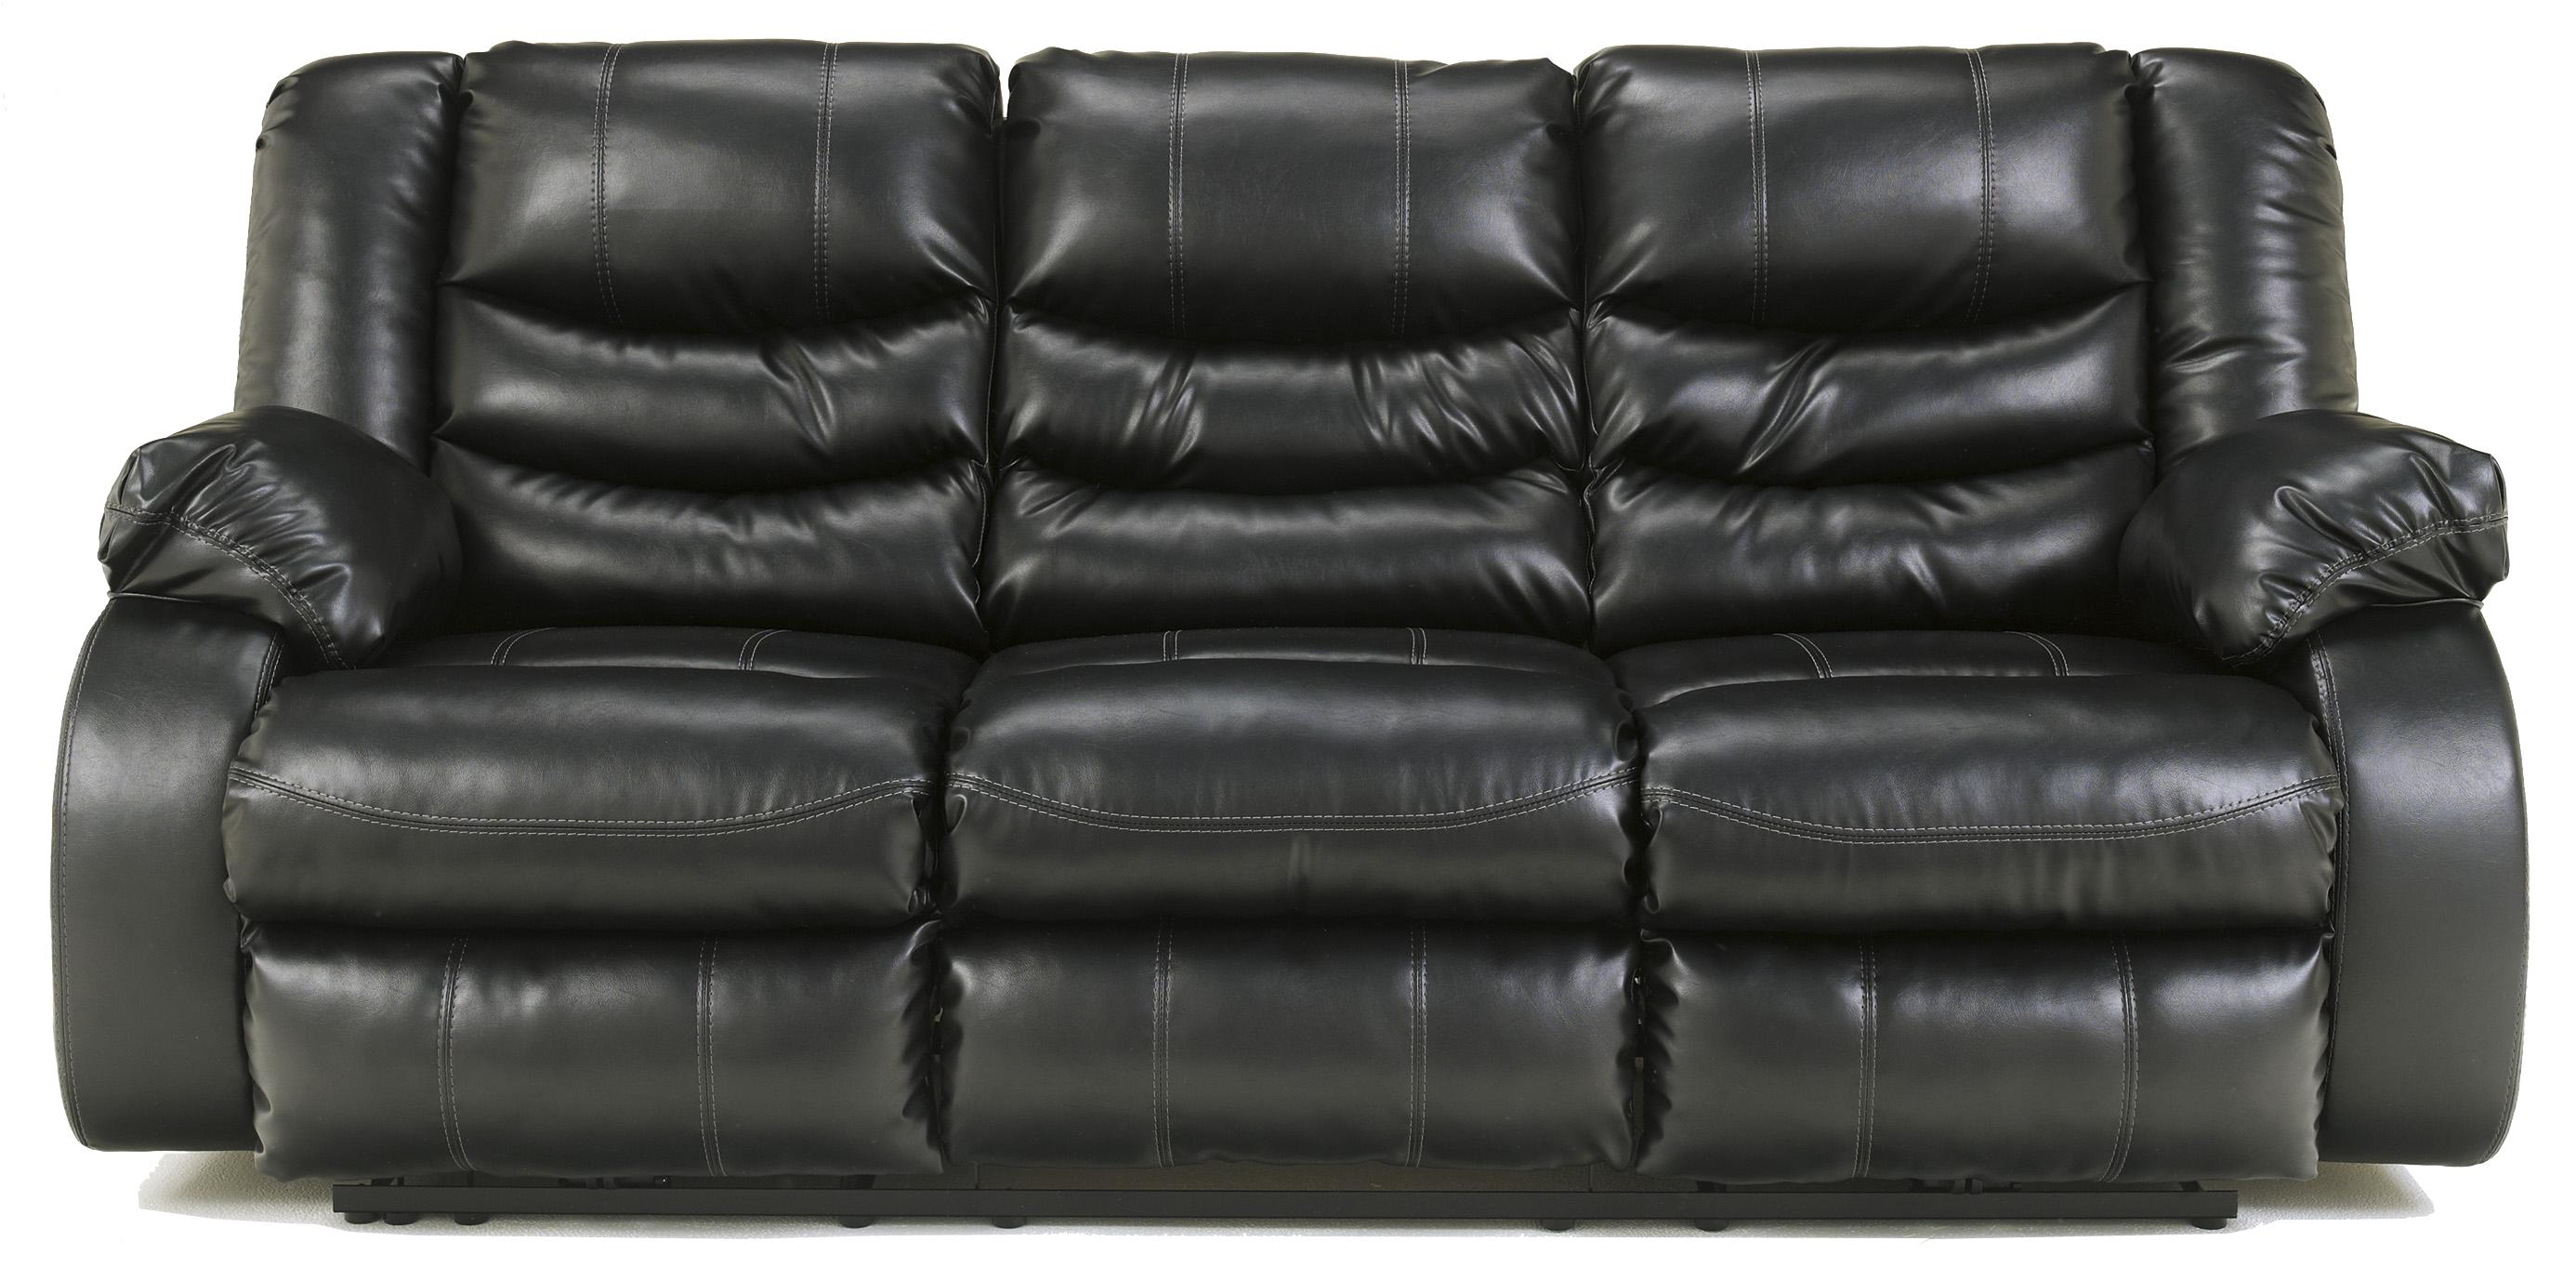 Contemporary Faux Leather Reclining Sofa With Pillow Arms